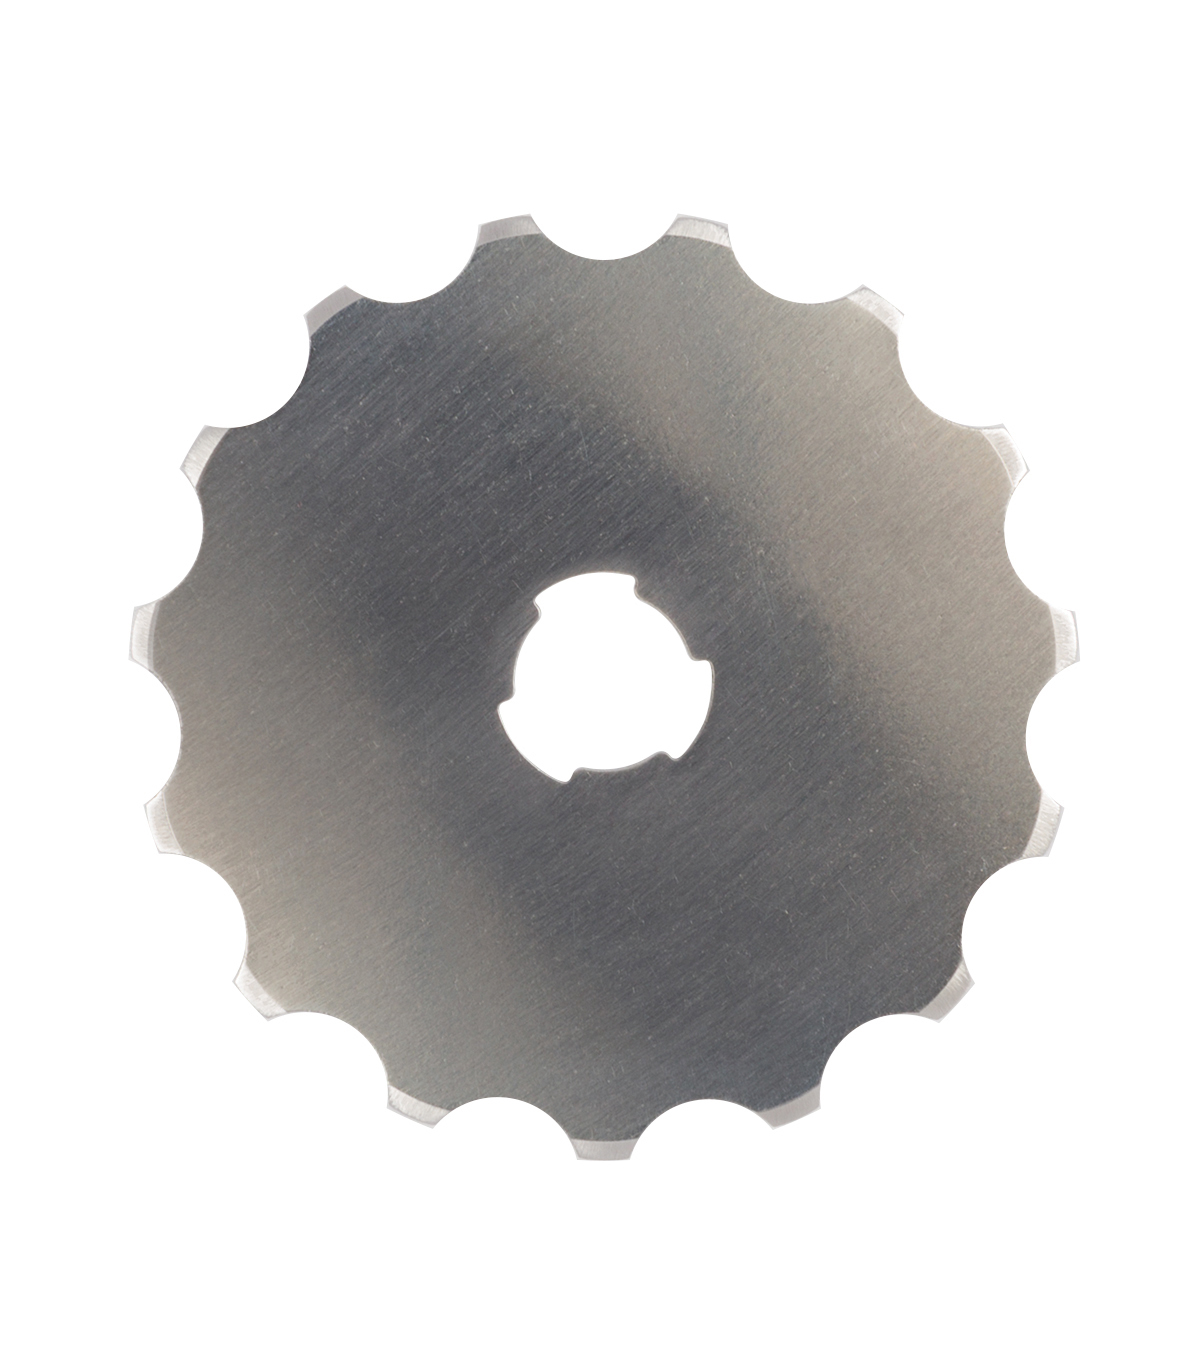 Fiskars 45mm Perforating Rotary Blade